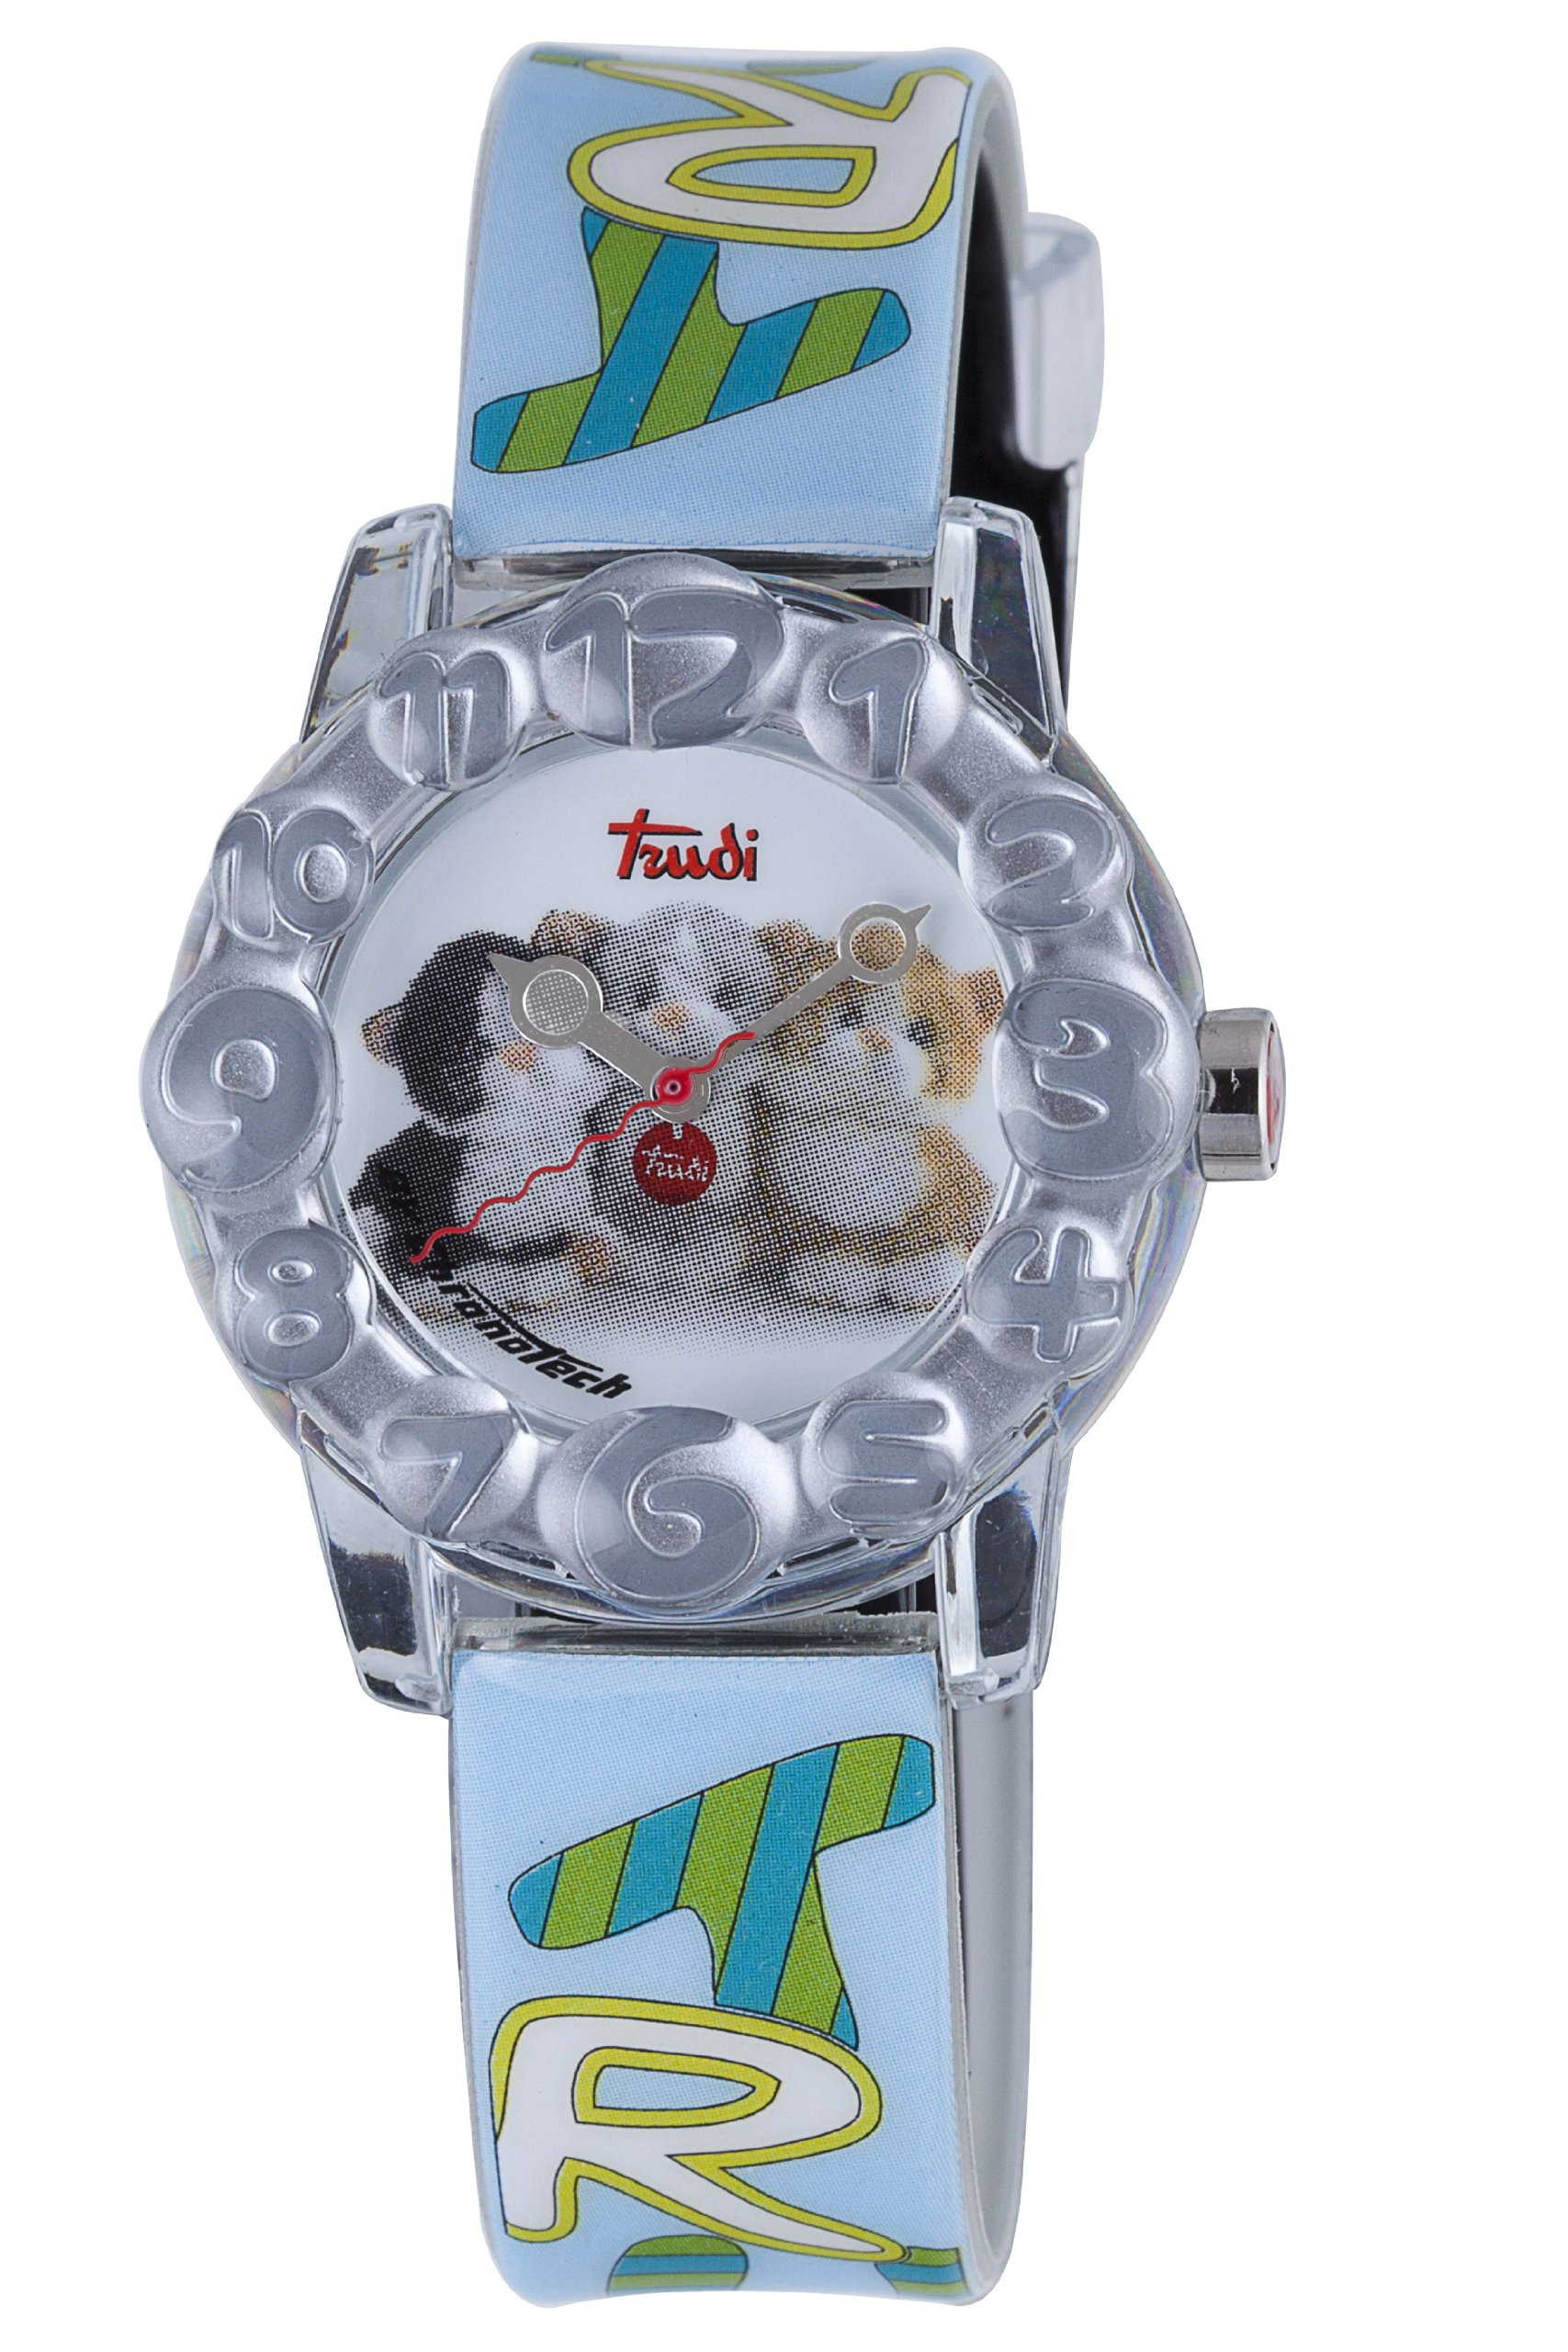 Trudi Kid's Three Kittens Watch, Light Blue